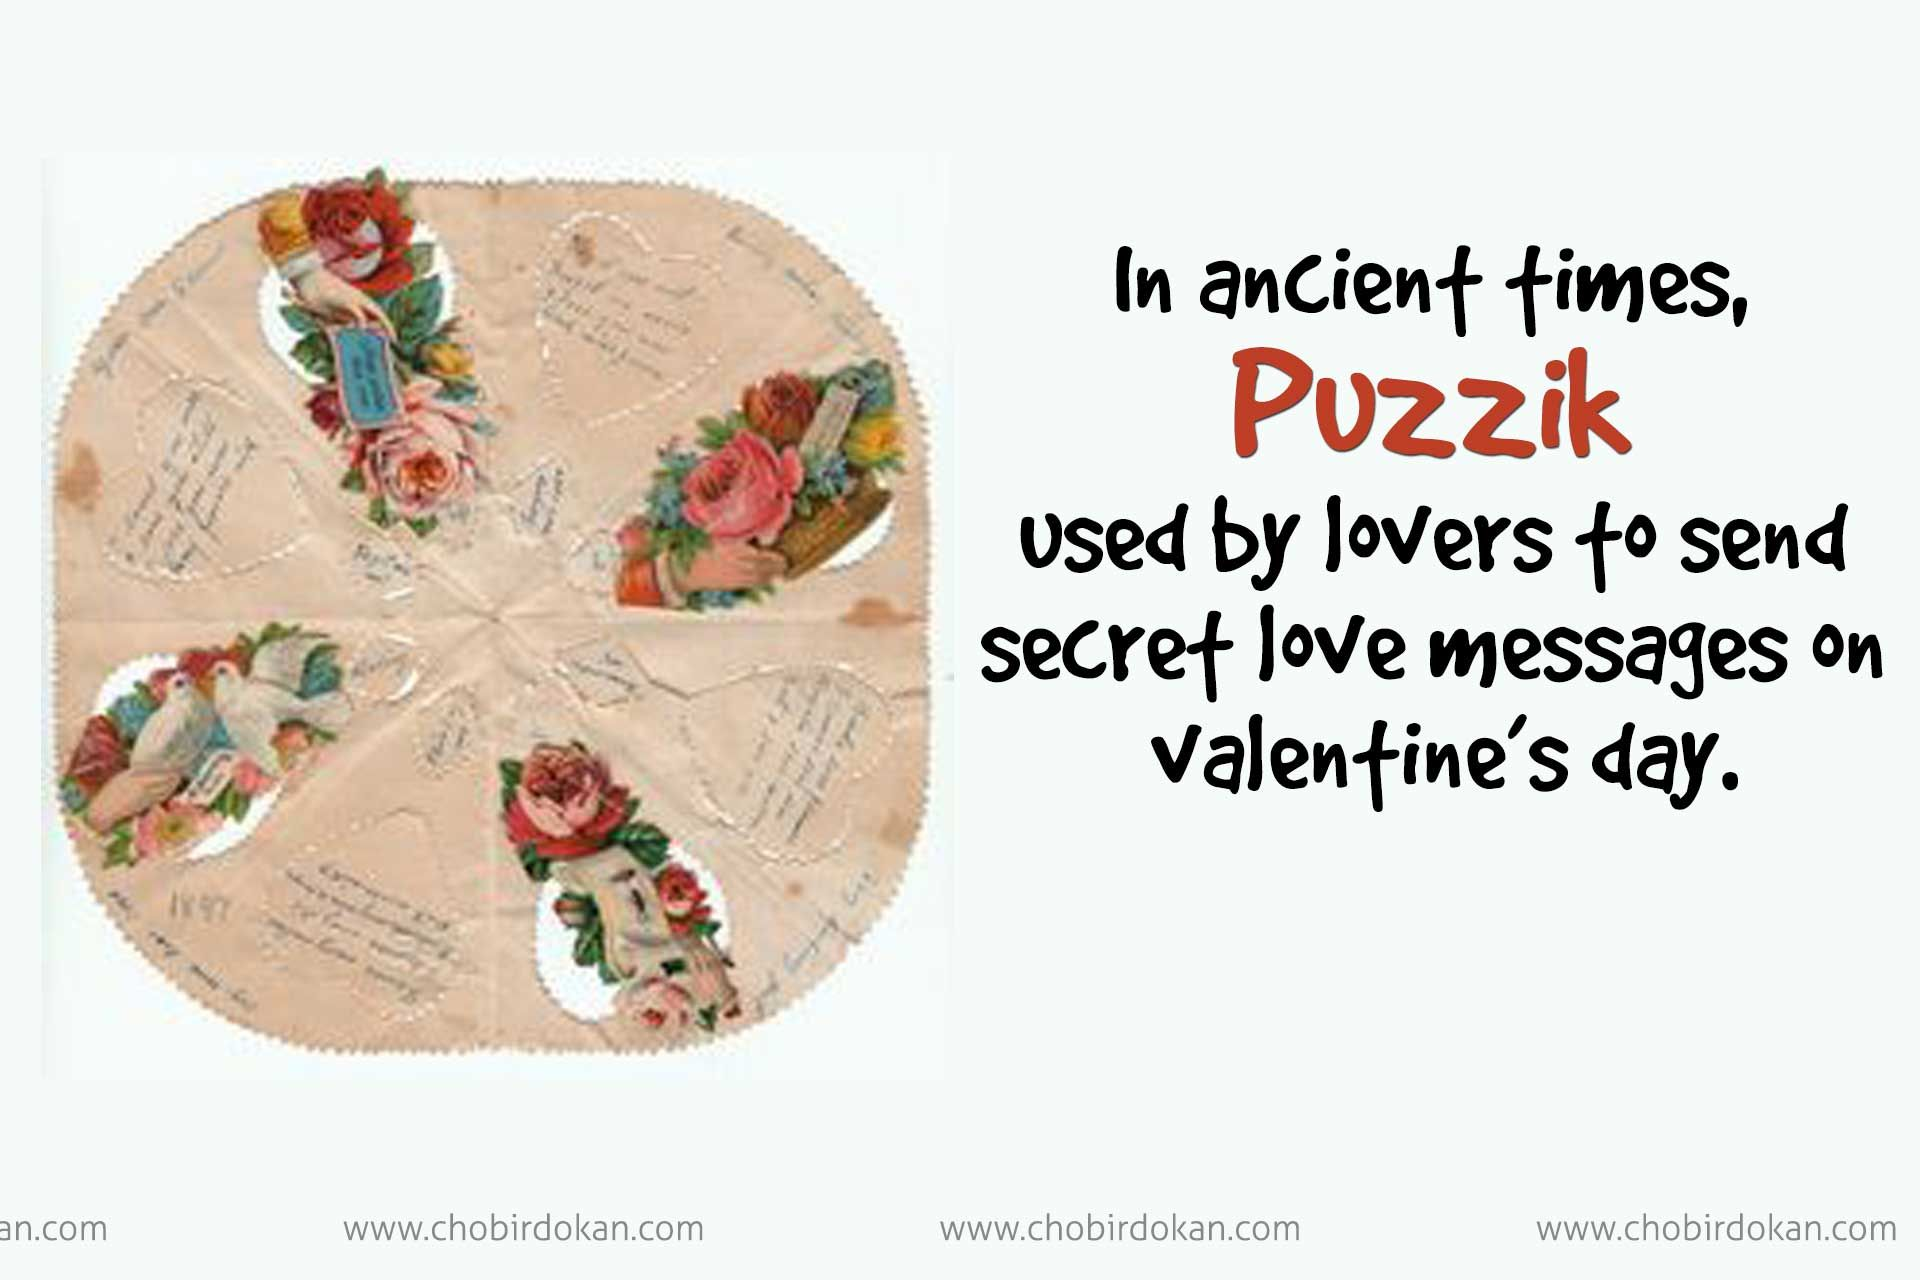 valentines day history and facts with various theories know how valentines day started and meaning of different color rose